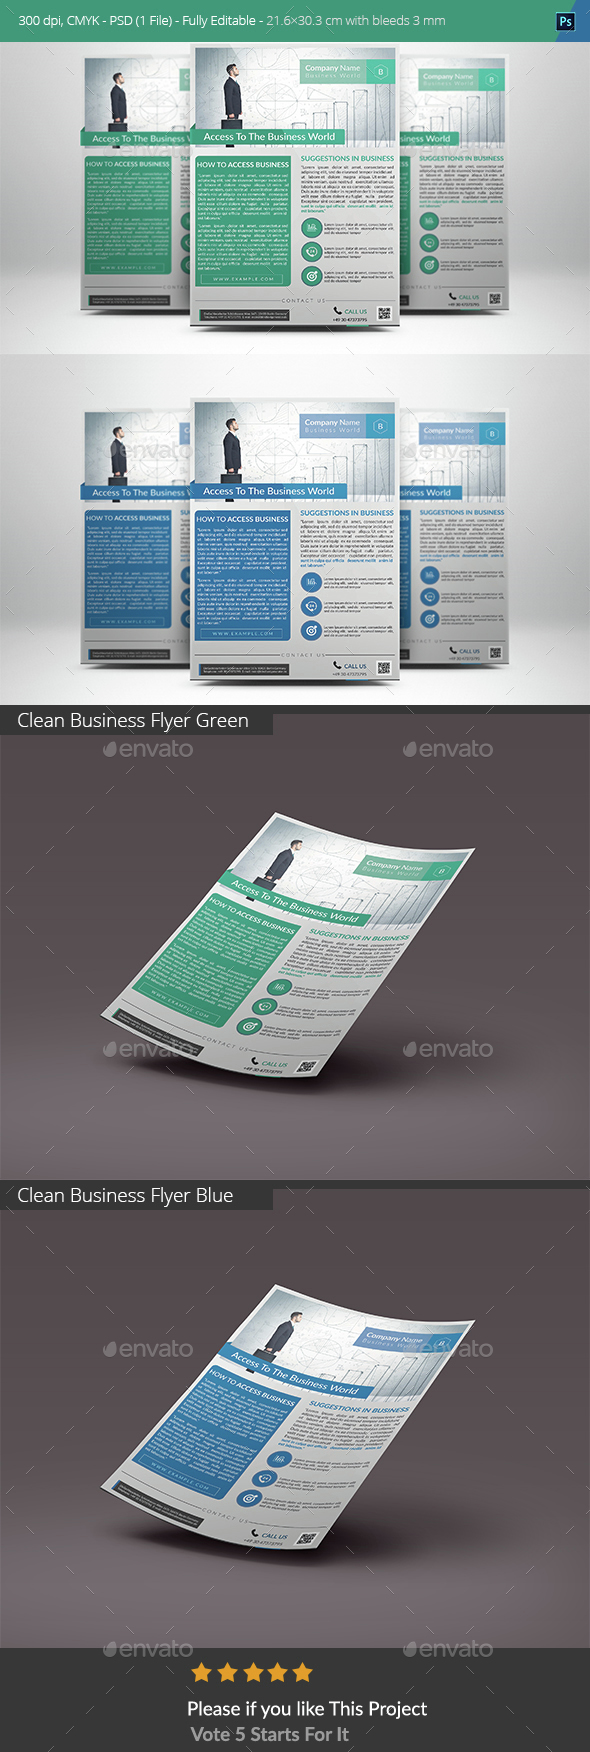 Clean Business Flyer  - Corporate Flyers